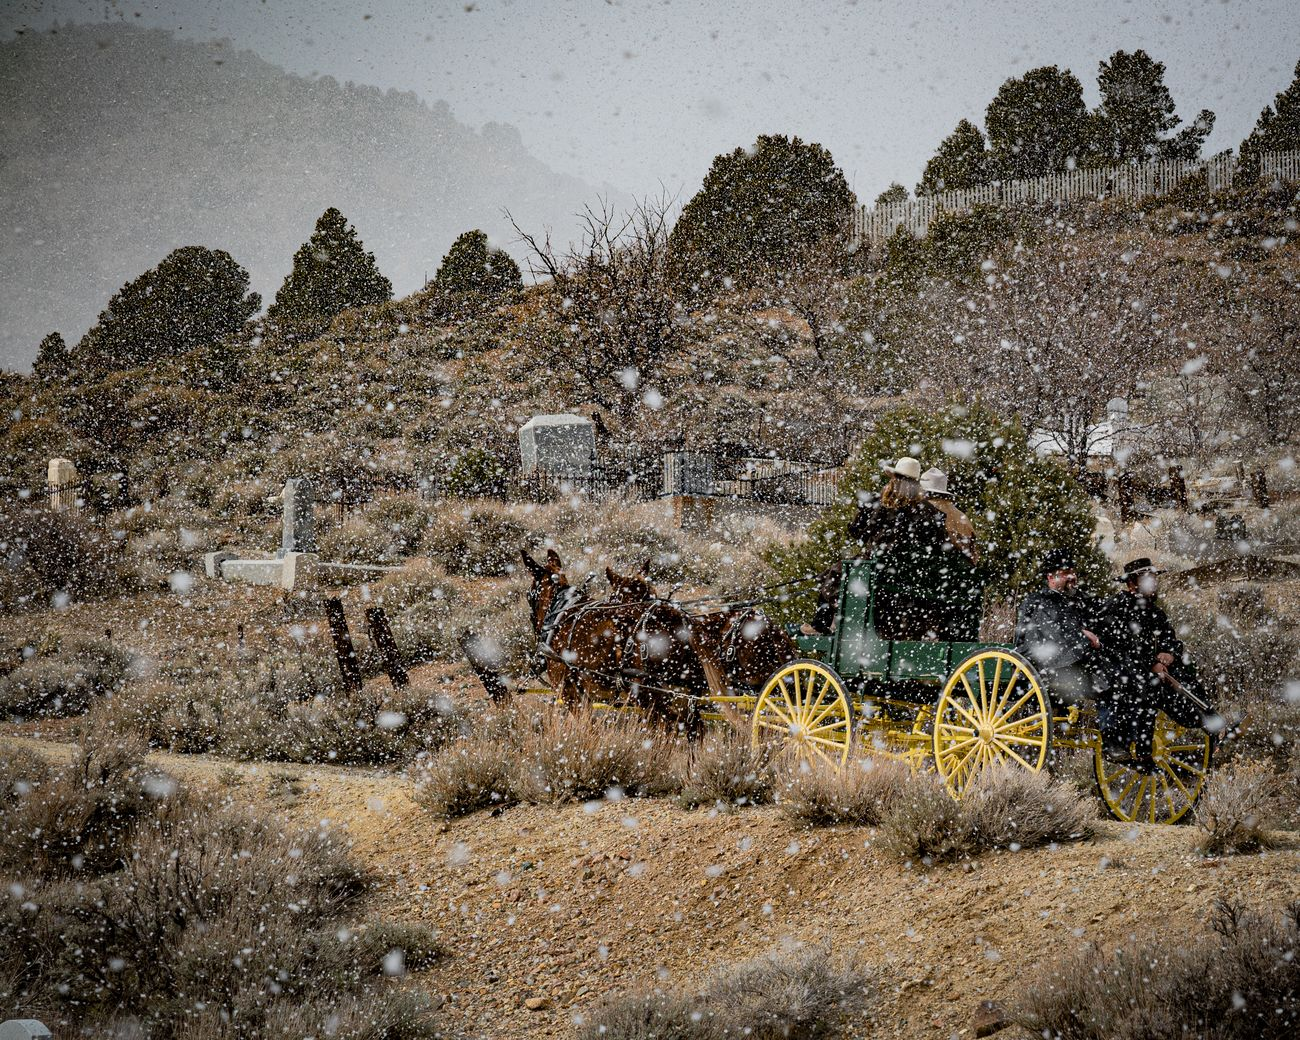 An 1800's style funeral procession for an Icon of Virginia City NV